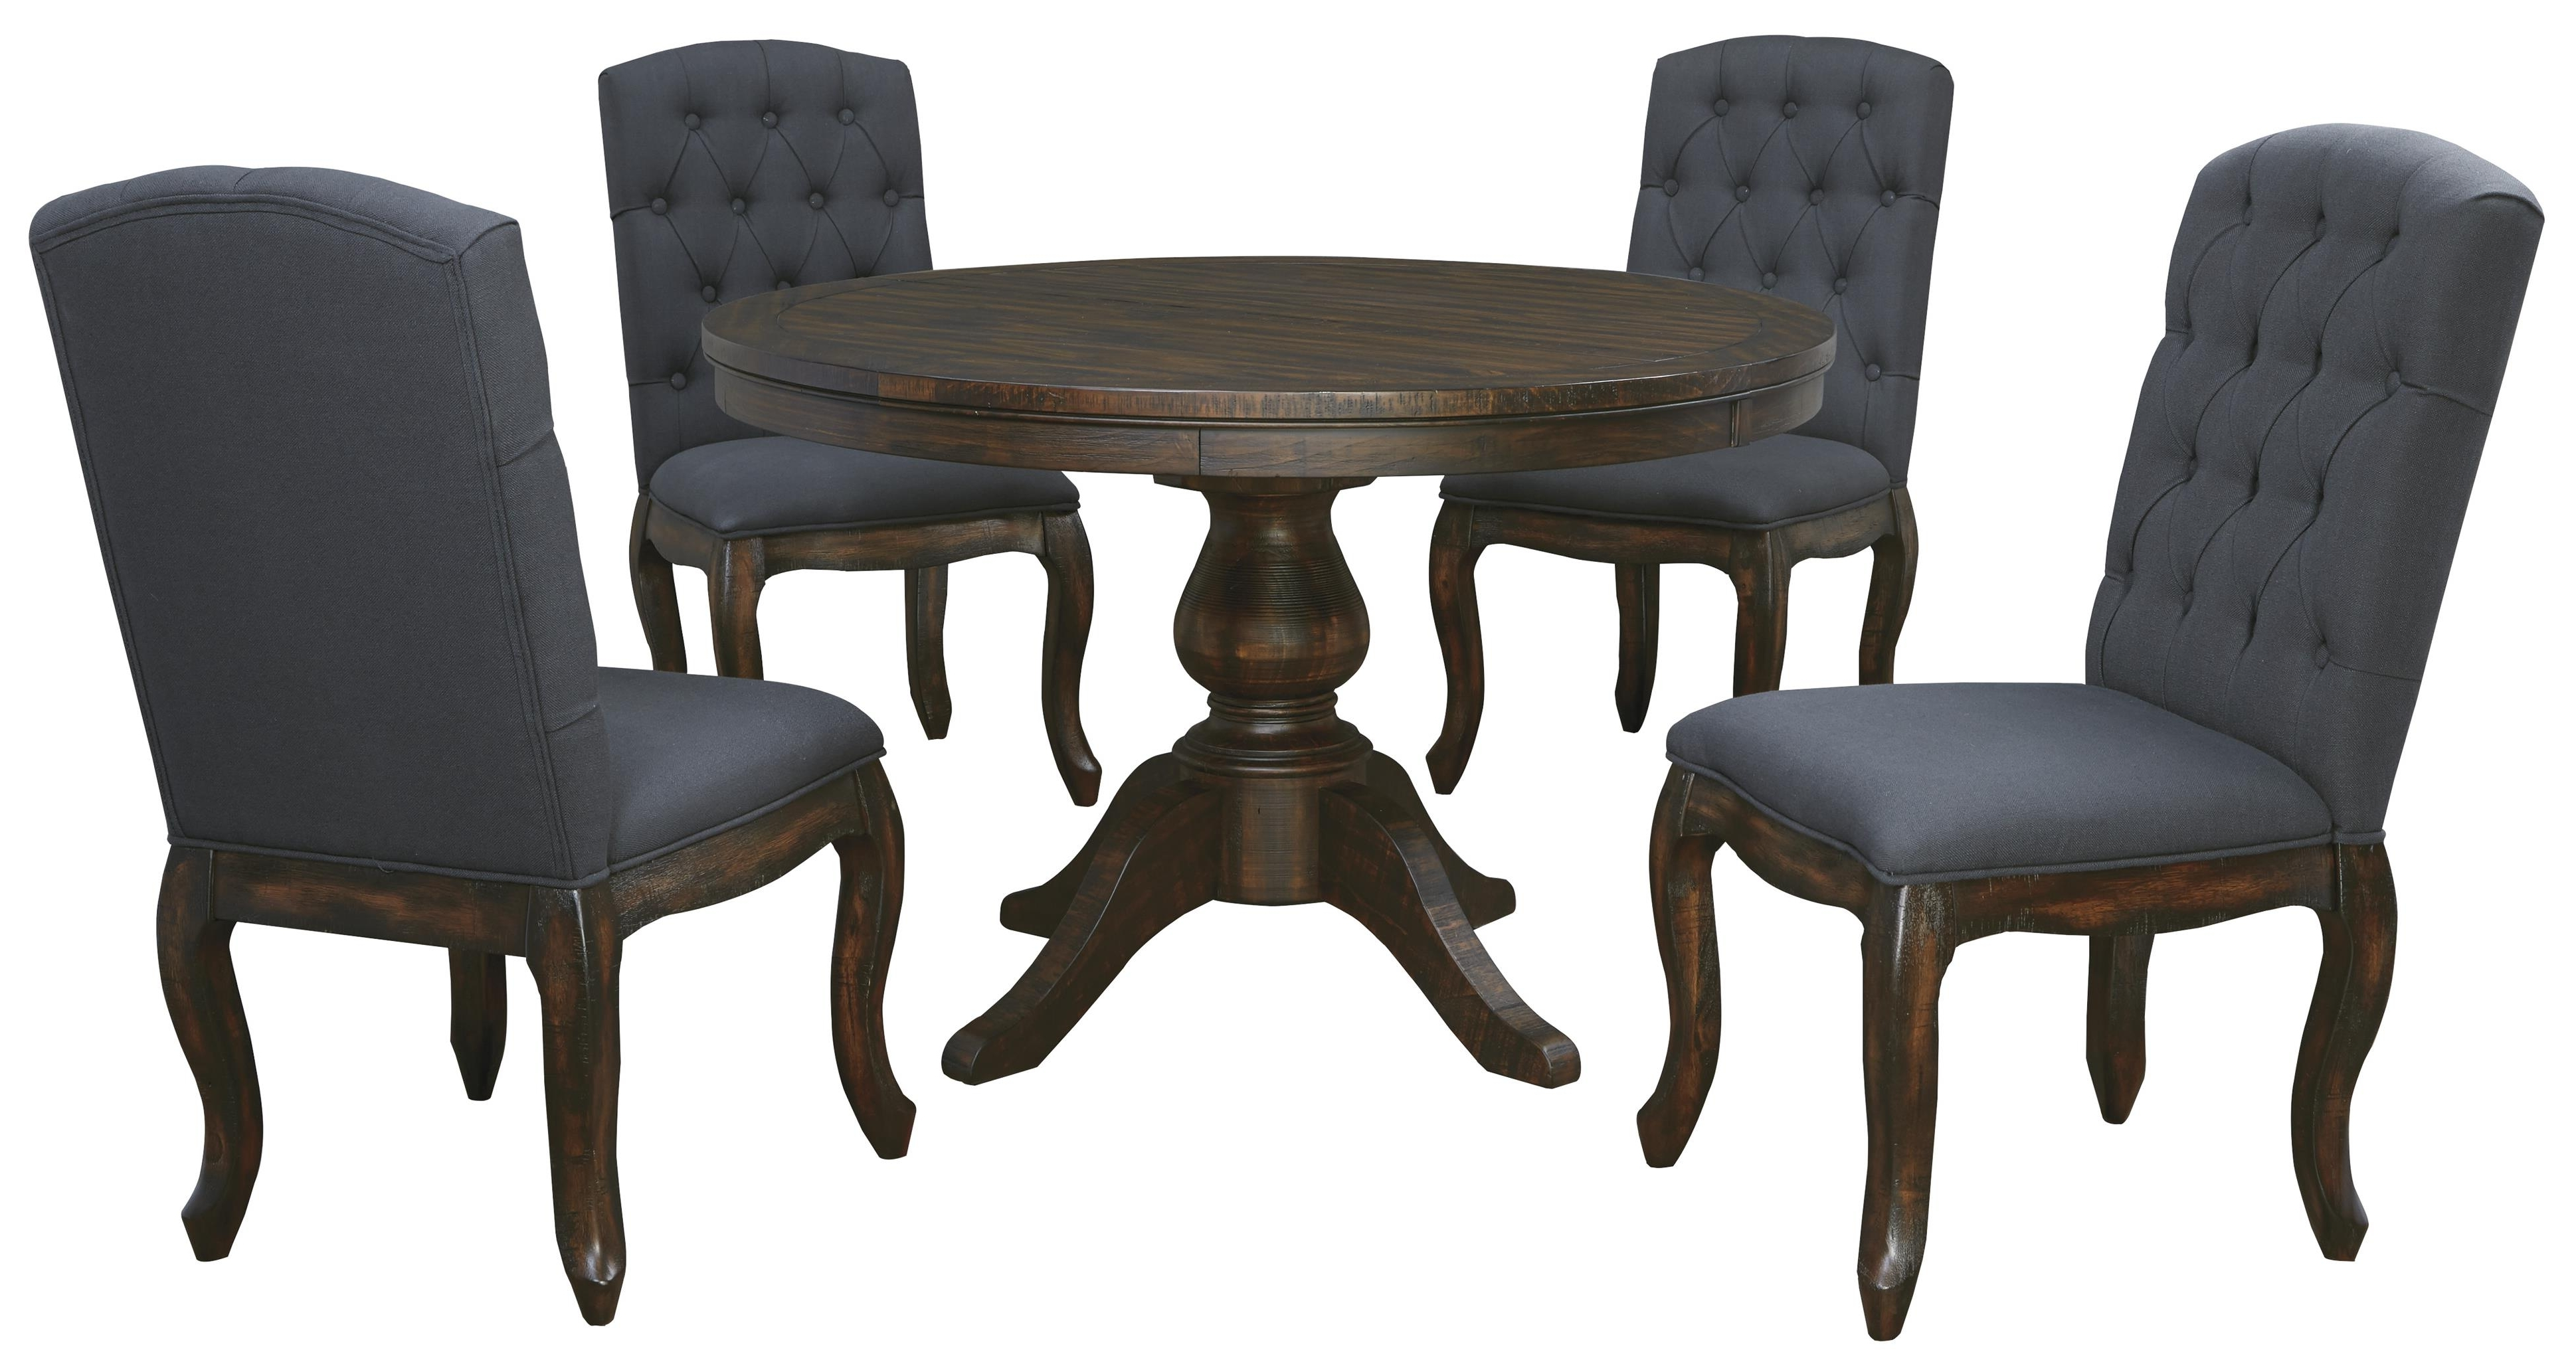 5 Piece Round Dining Table Set – Castrophotos Intended For Well Liked Macie 5 Piece Round Dining Sets (View 4 of 25)